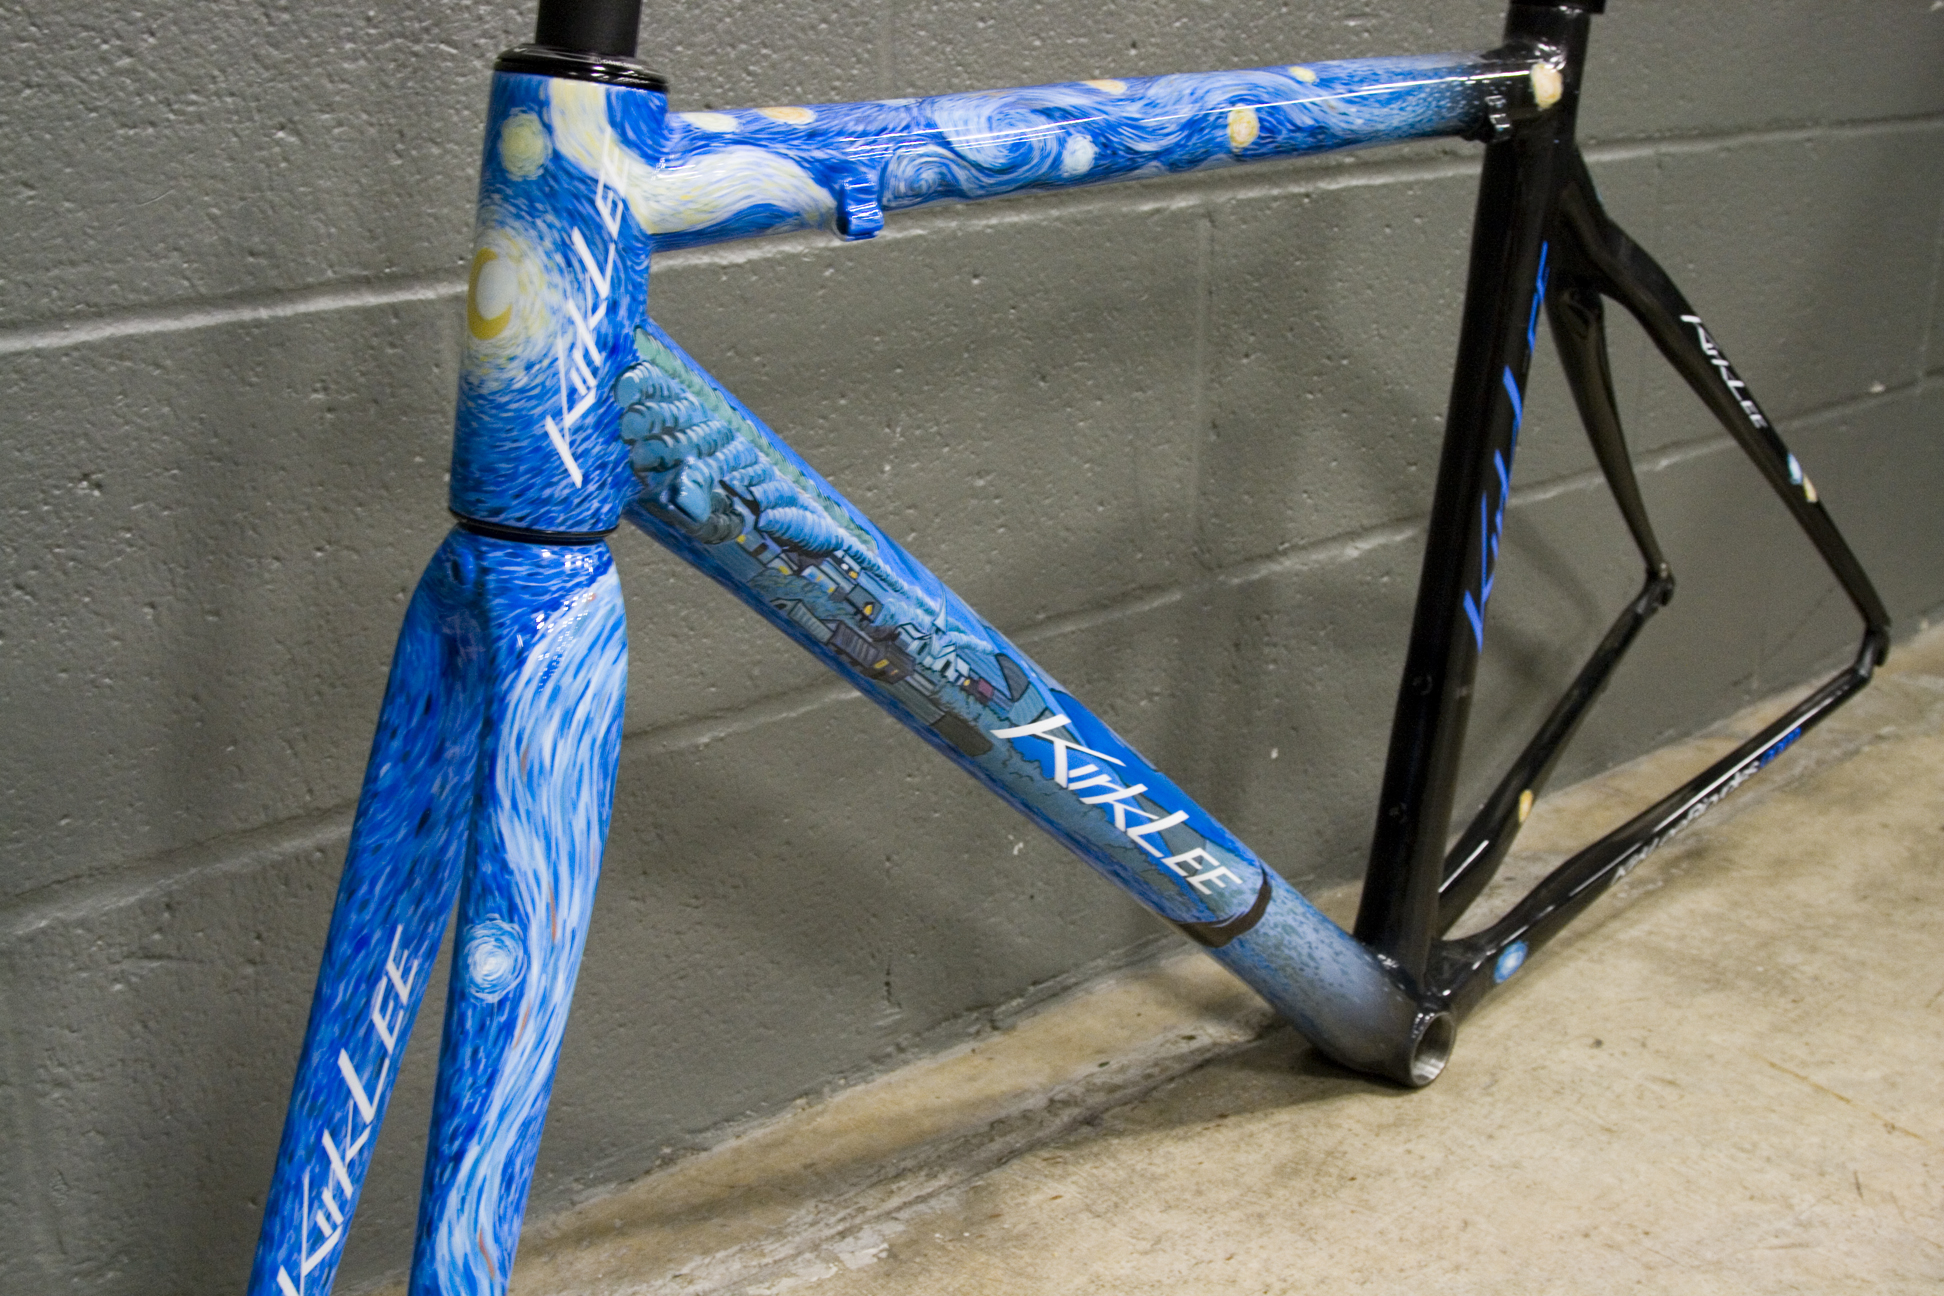 Custom Painted Bike Frames Uk